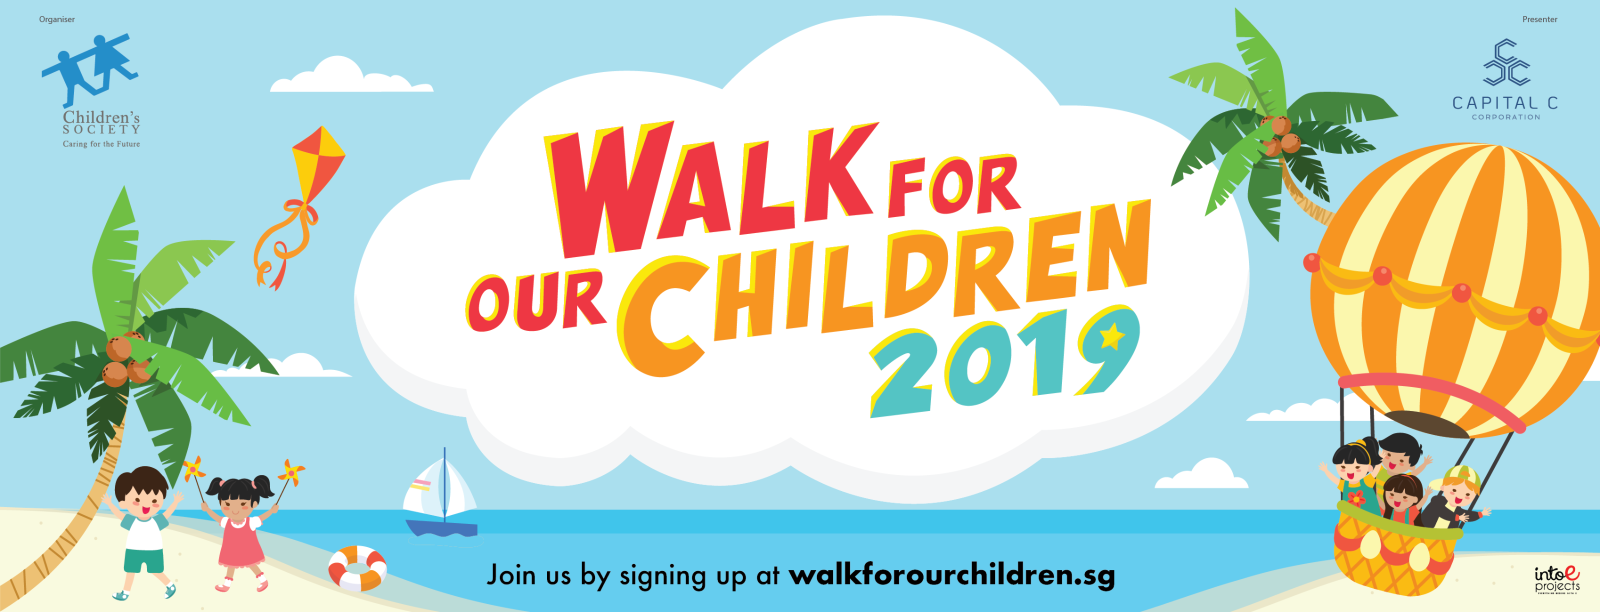 Walk for our Children 2019 Banner - Singapore Children's Society